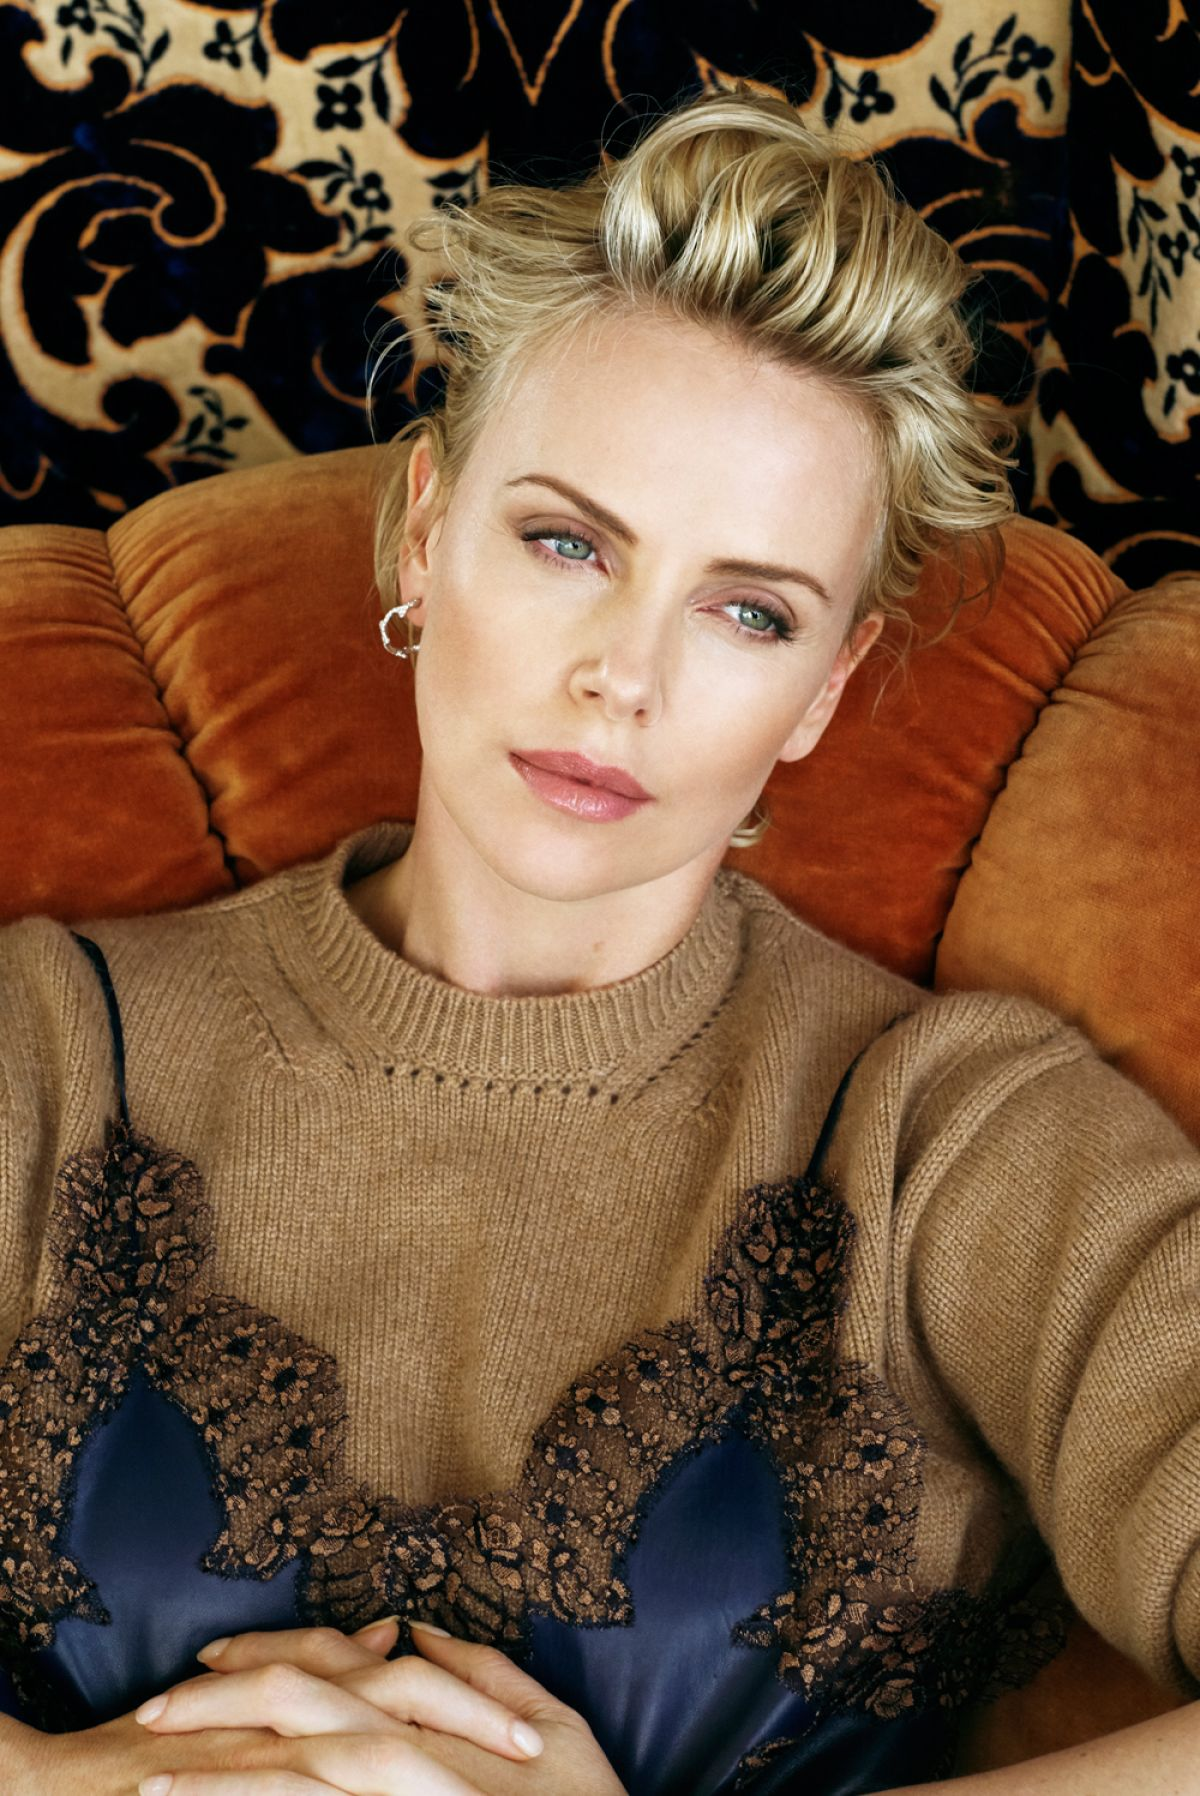 CHARLIZE THERON by Collier Schorr for V Magazine, #101 ... Charlize Theron